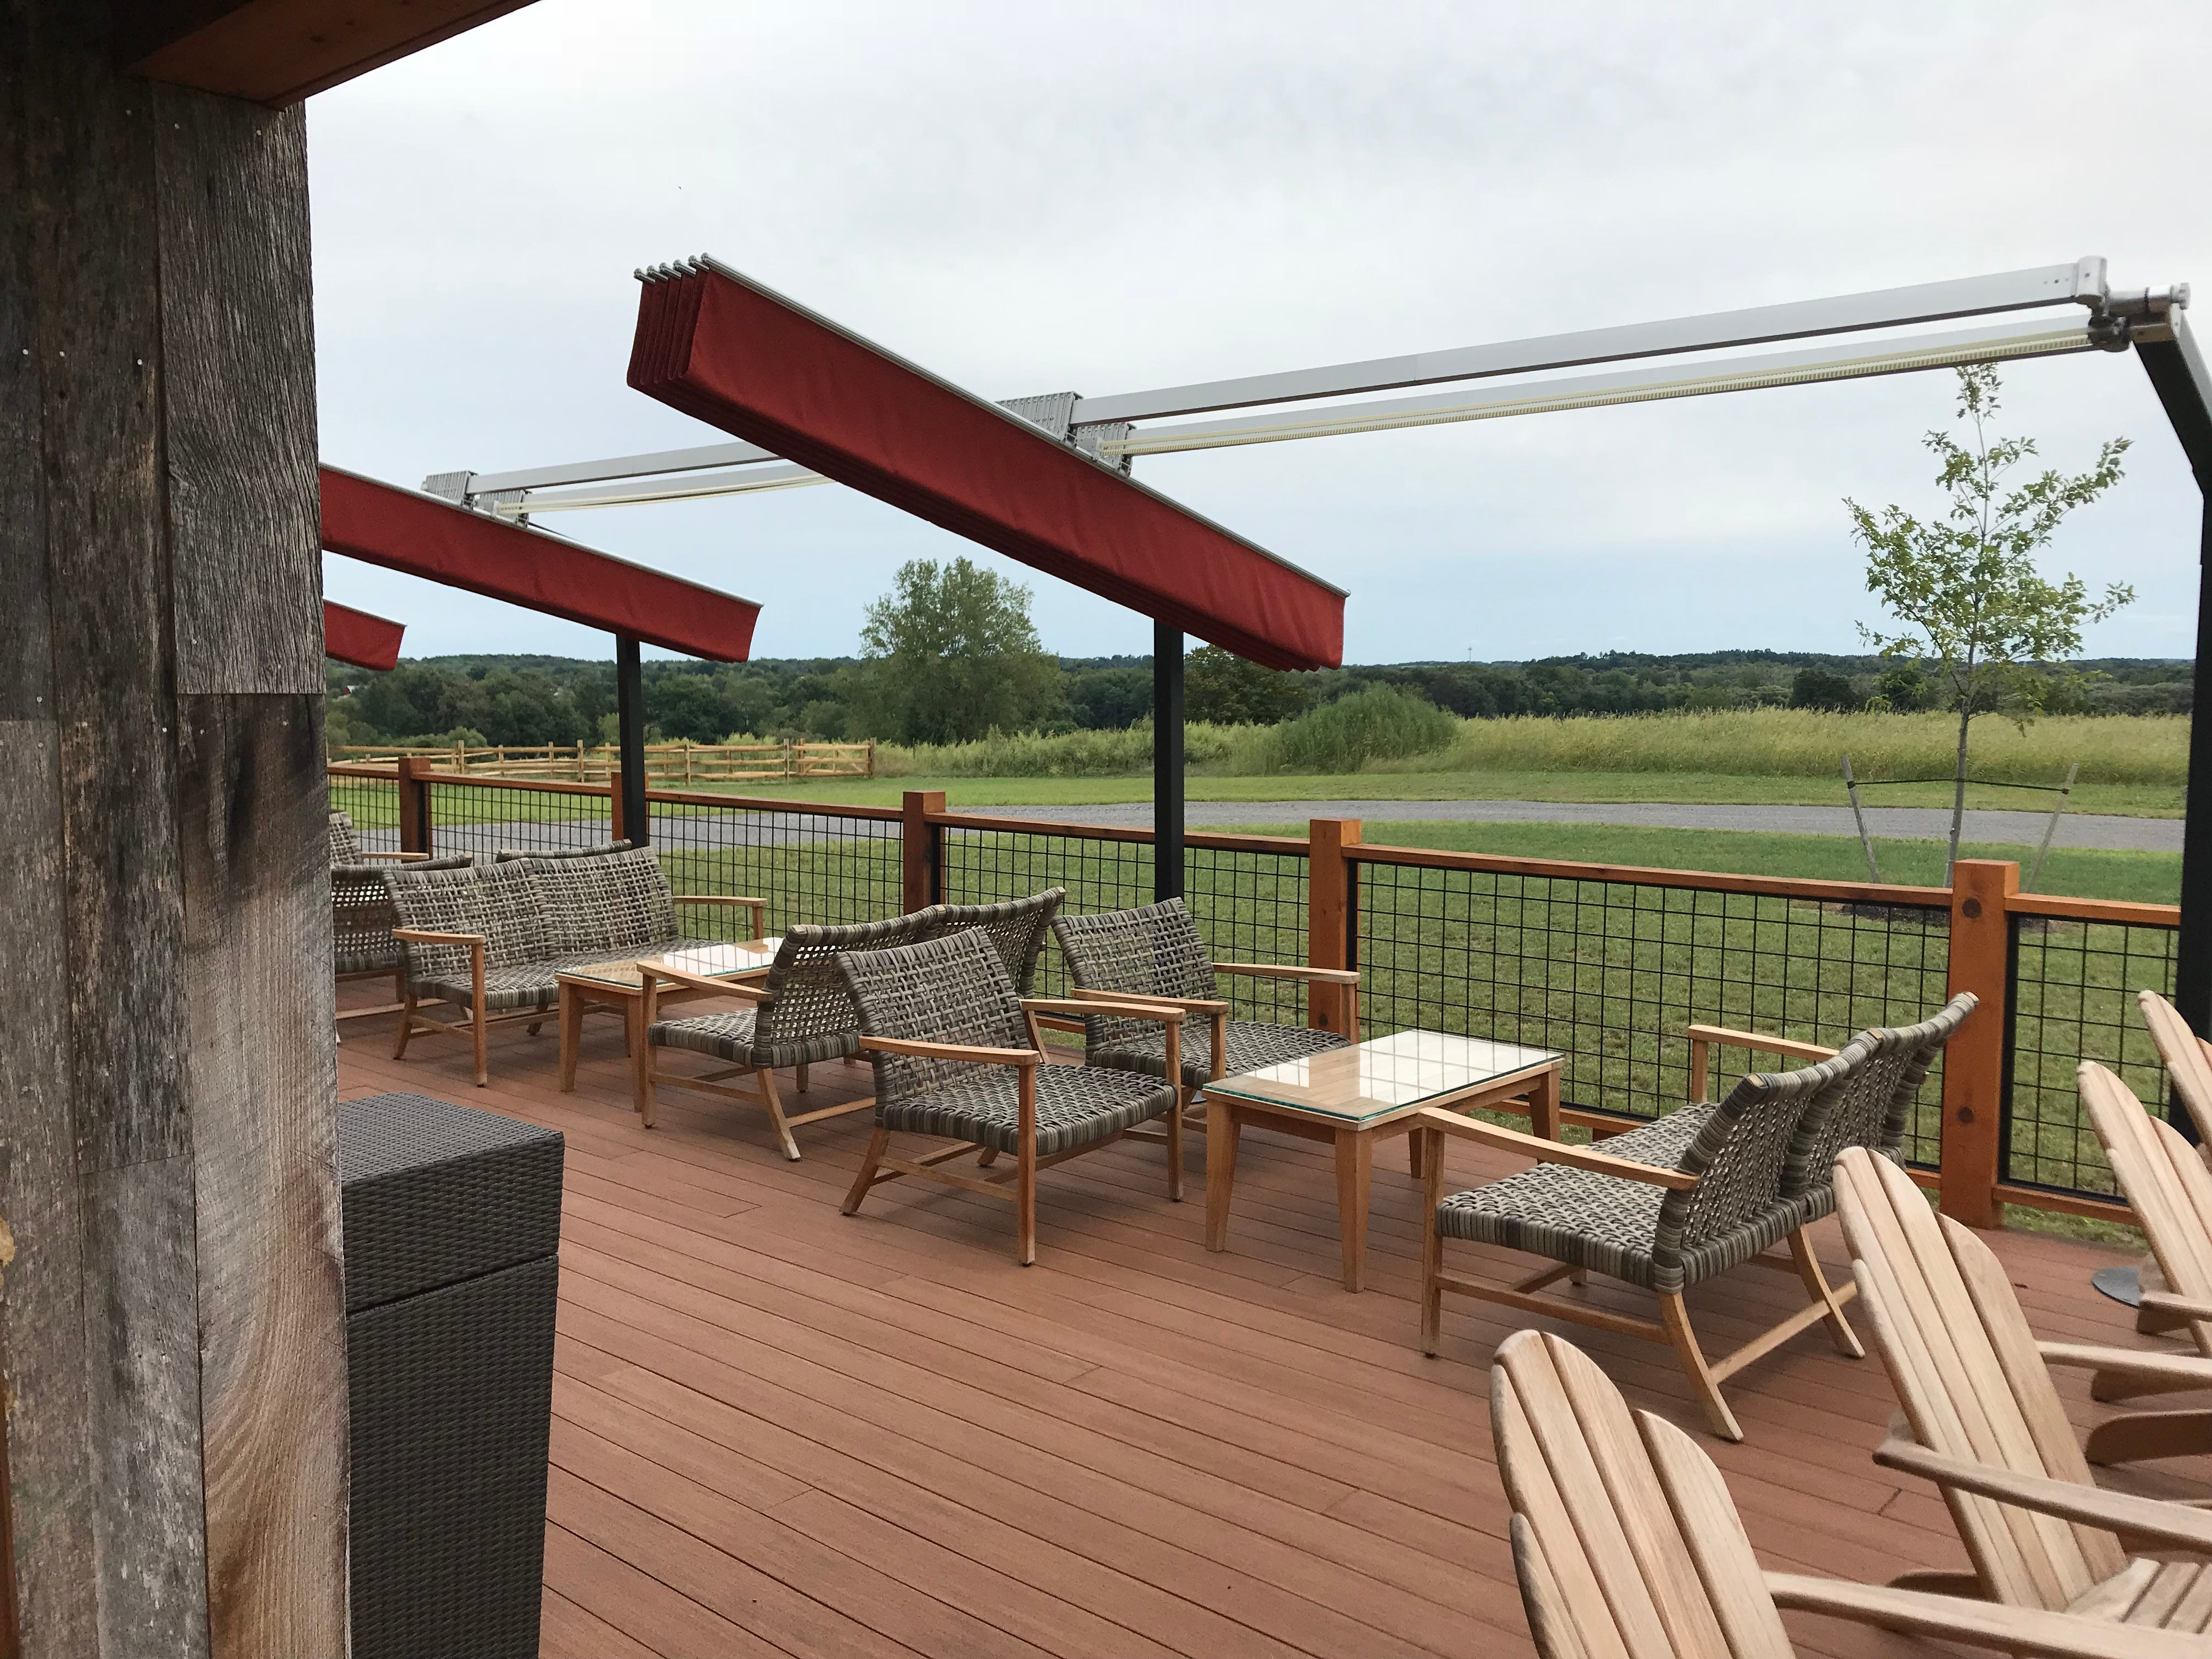 Outdoor seating options, underneath retractable umbrellas, at Oak & Apple Cidery in Penfield.